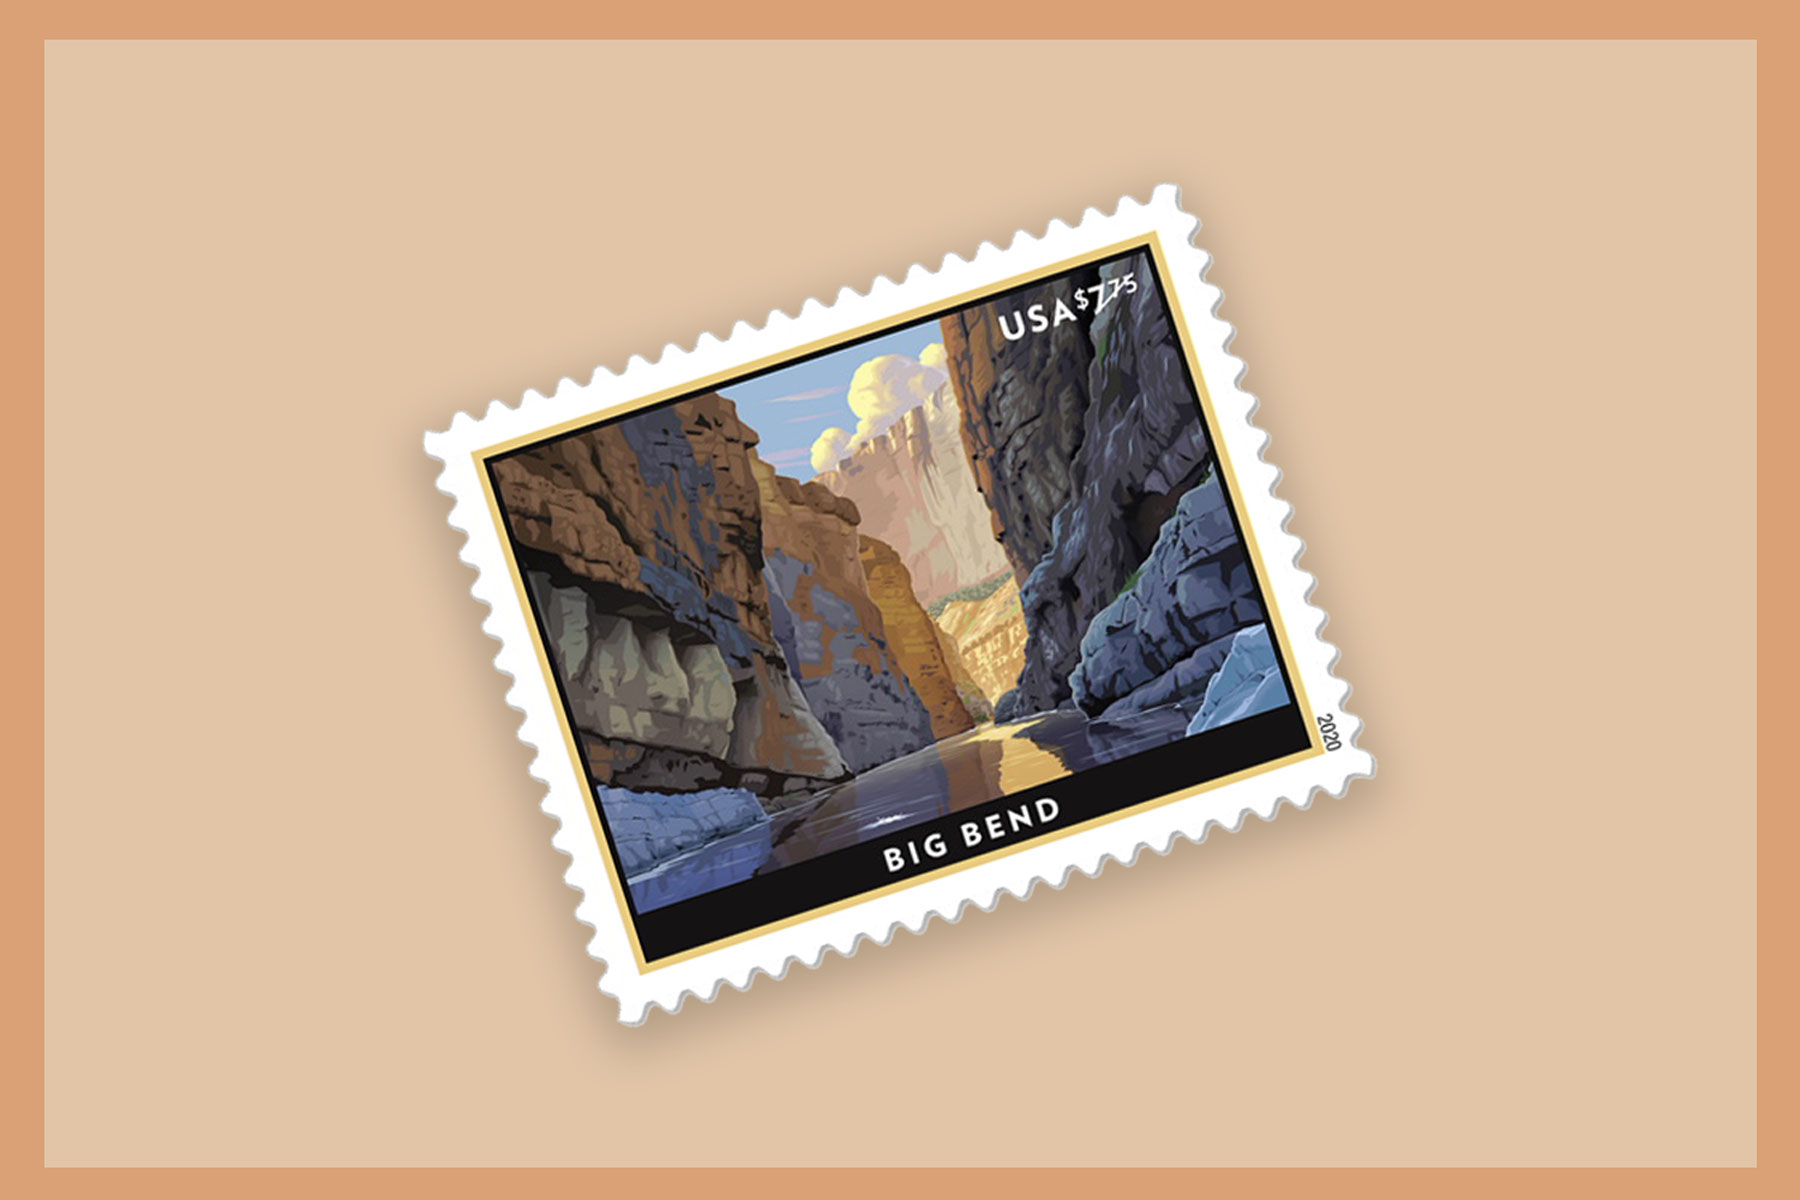 Outdoor-themed Illustrated postage stamp